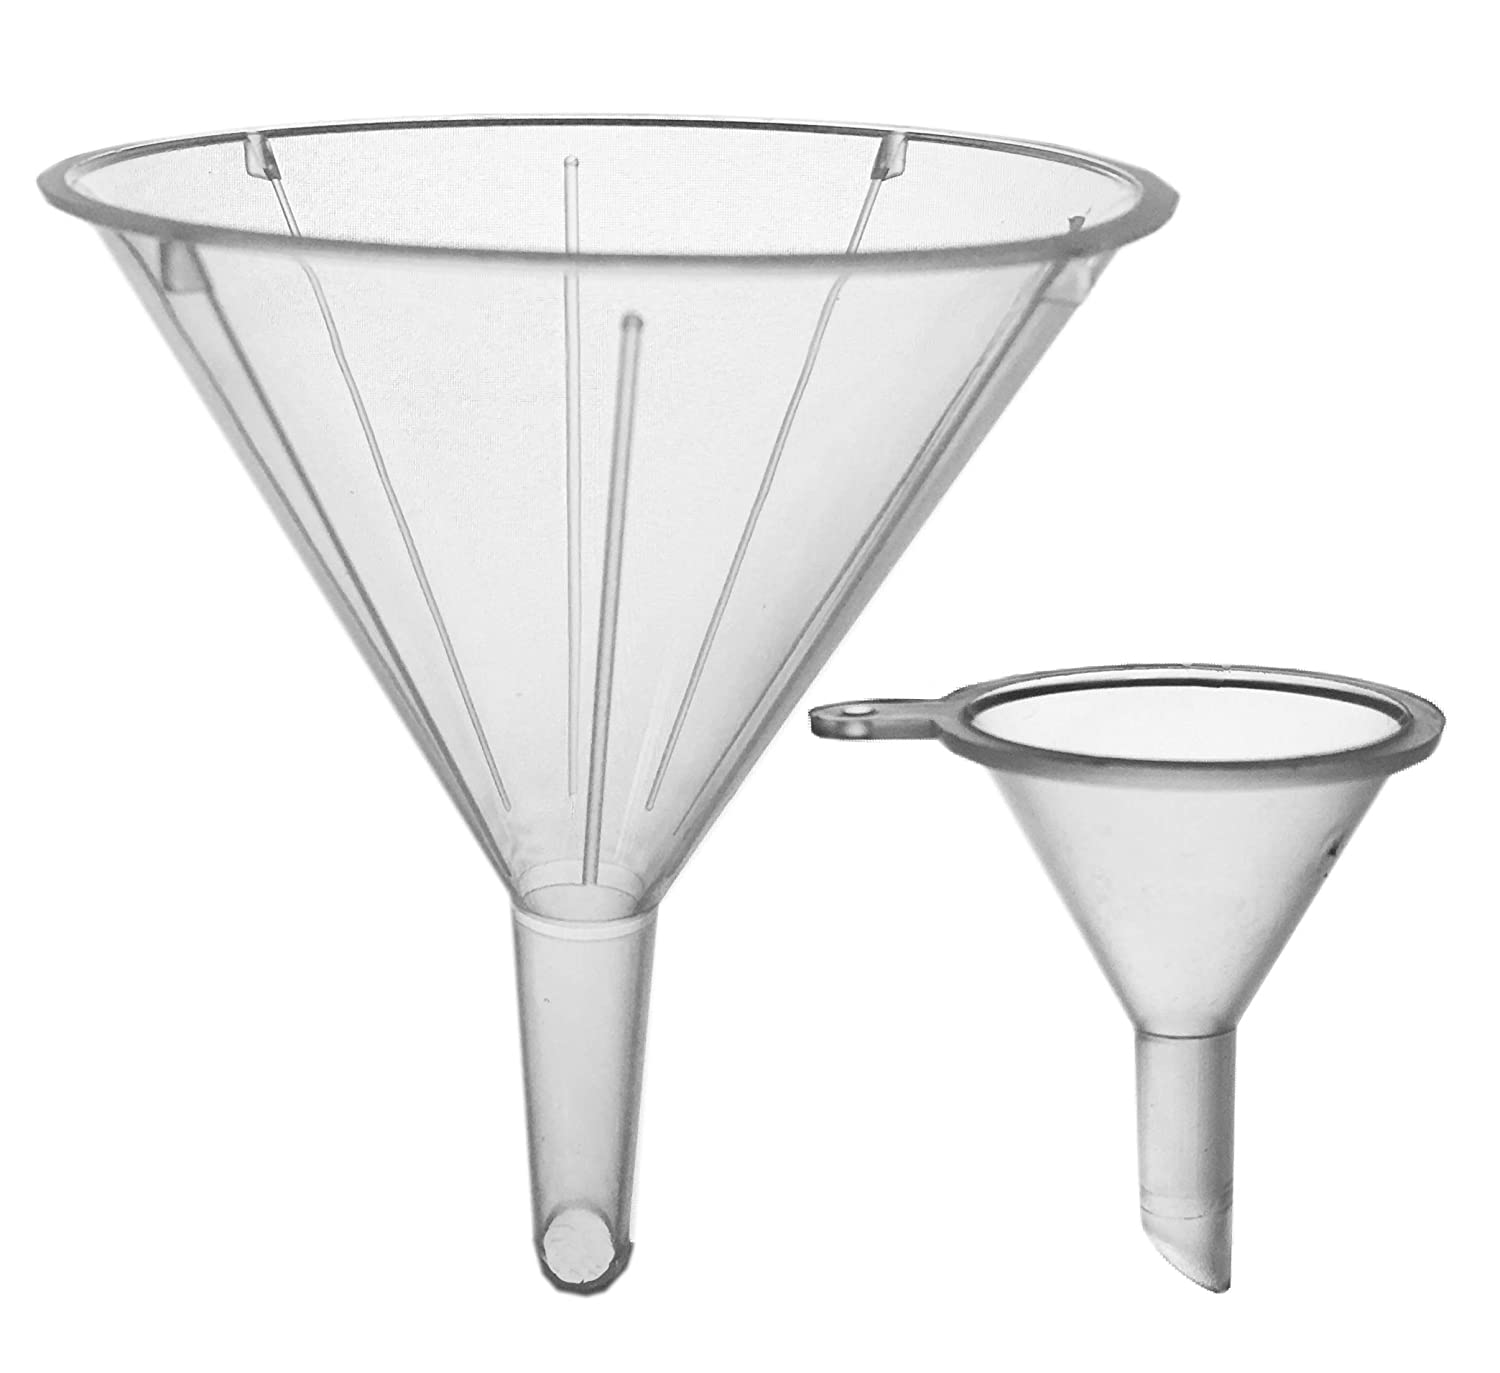 6-Pack of Firefly Mini Funnels - 2 Sizes - 3 of Each Size Firefly Fuel Inc. 4335511456